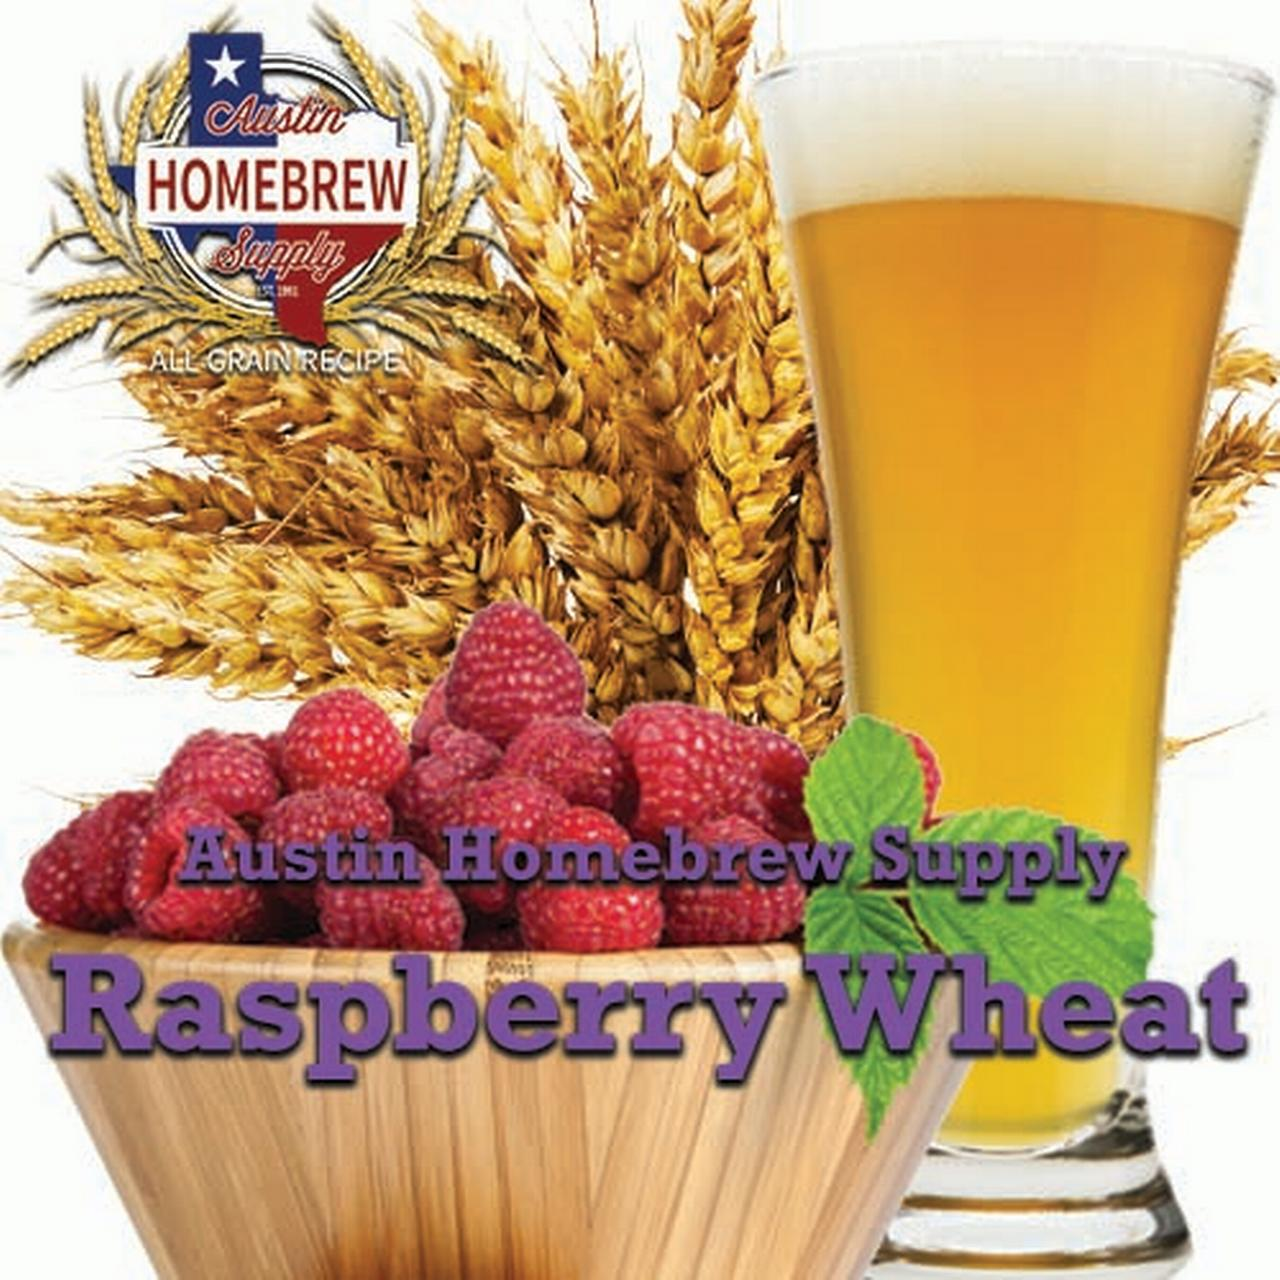 Austin Homebrew Raspberry Wheat (20) - ALL GRAIN